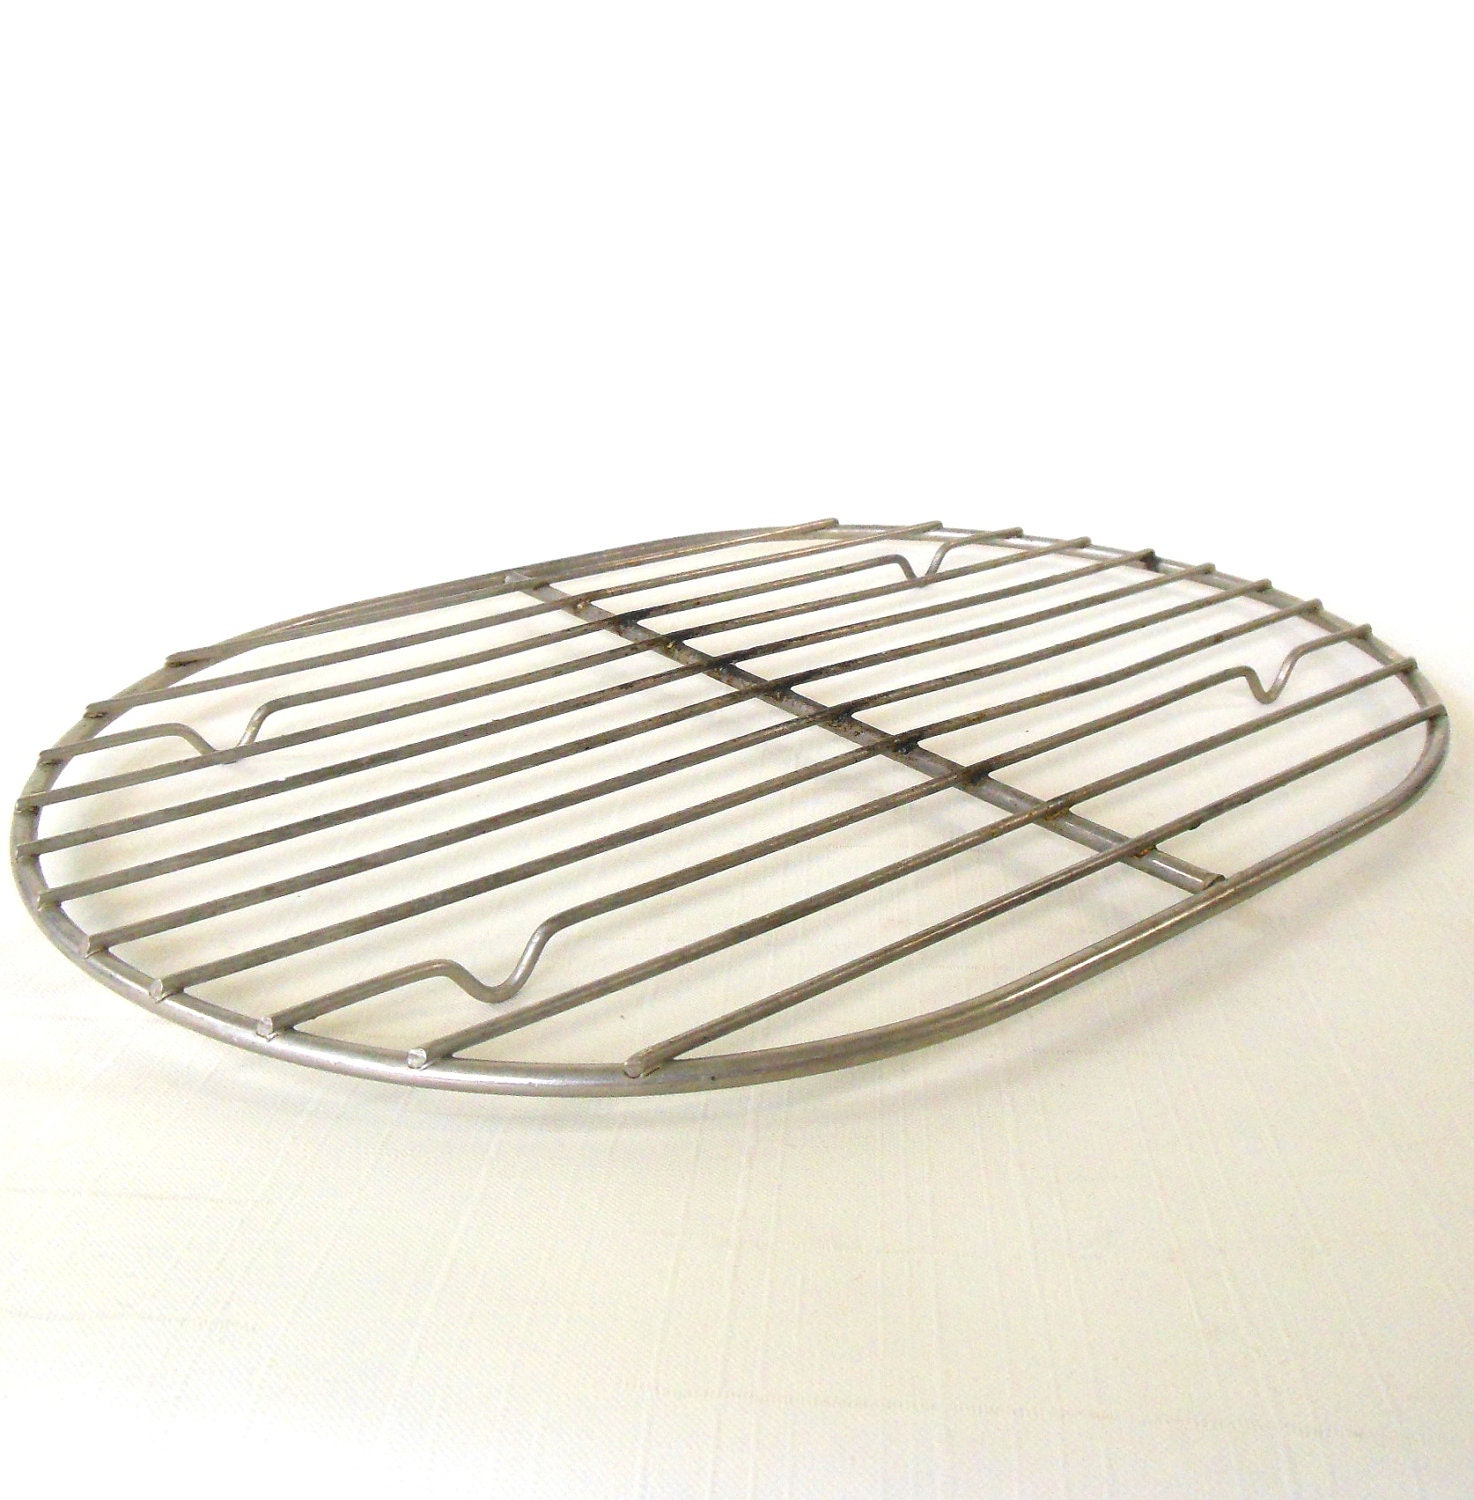 oval roasting rack wire trivet photo prop vintage. Black Bedroom Furniture Sets. Home Design Ideas